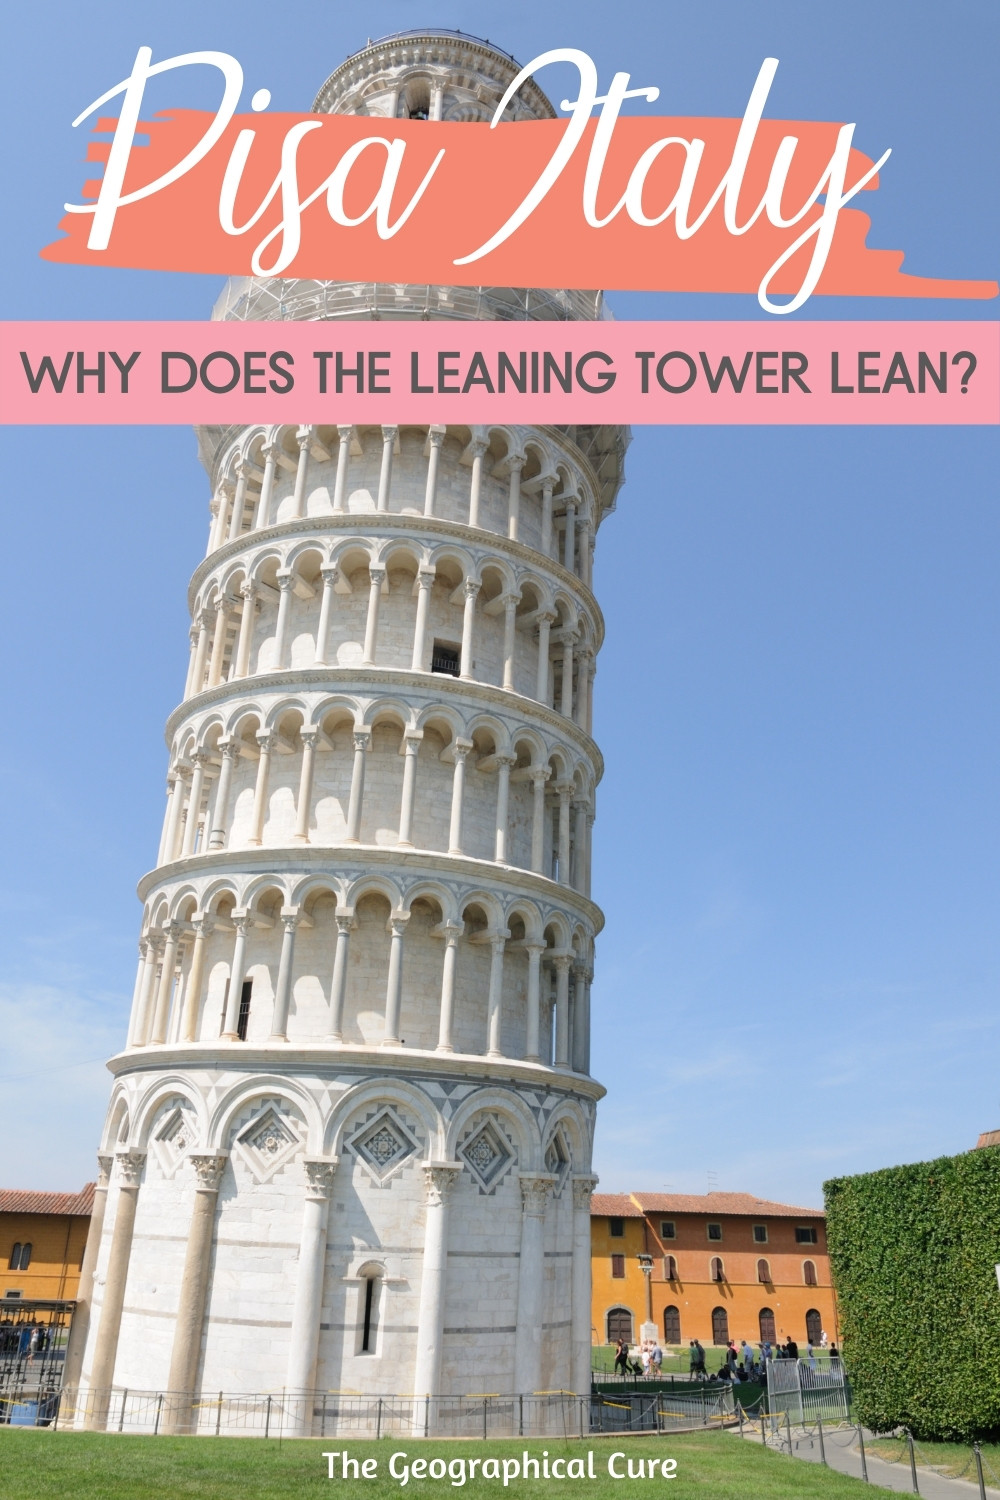 The leaning Tower of Pisa: Is It Worth Visiting and Why Does It Lean?